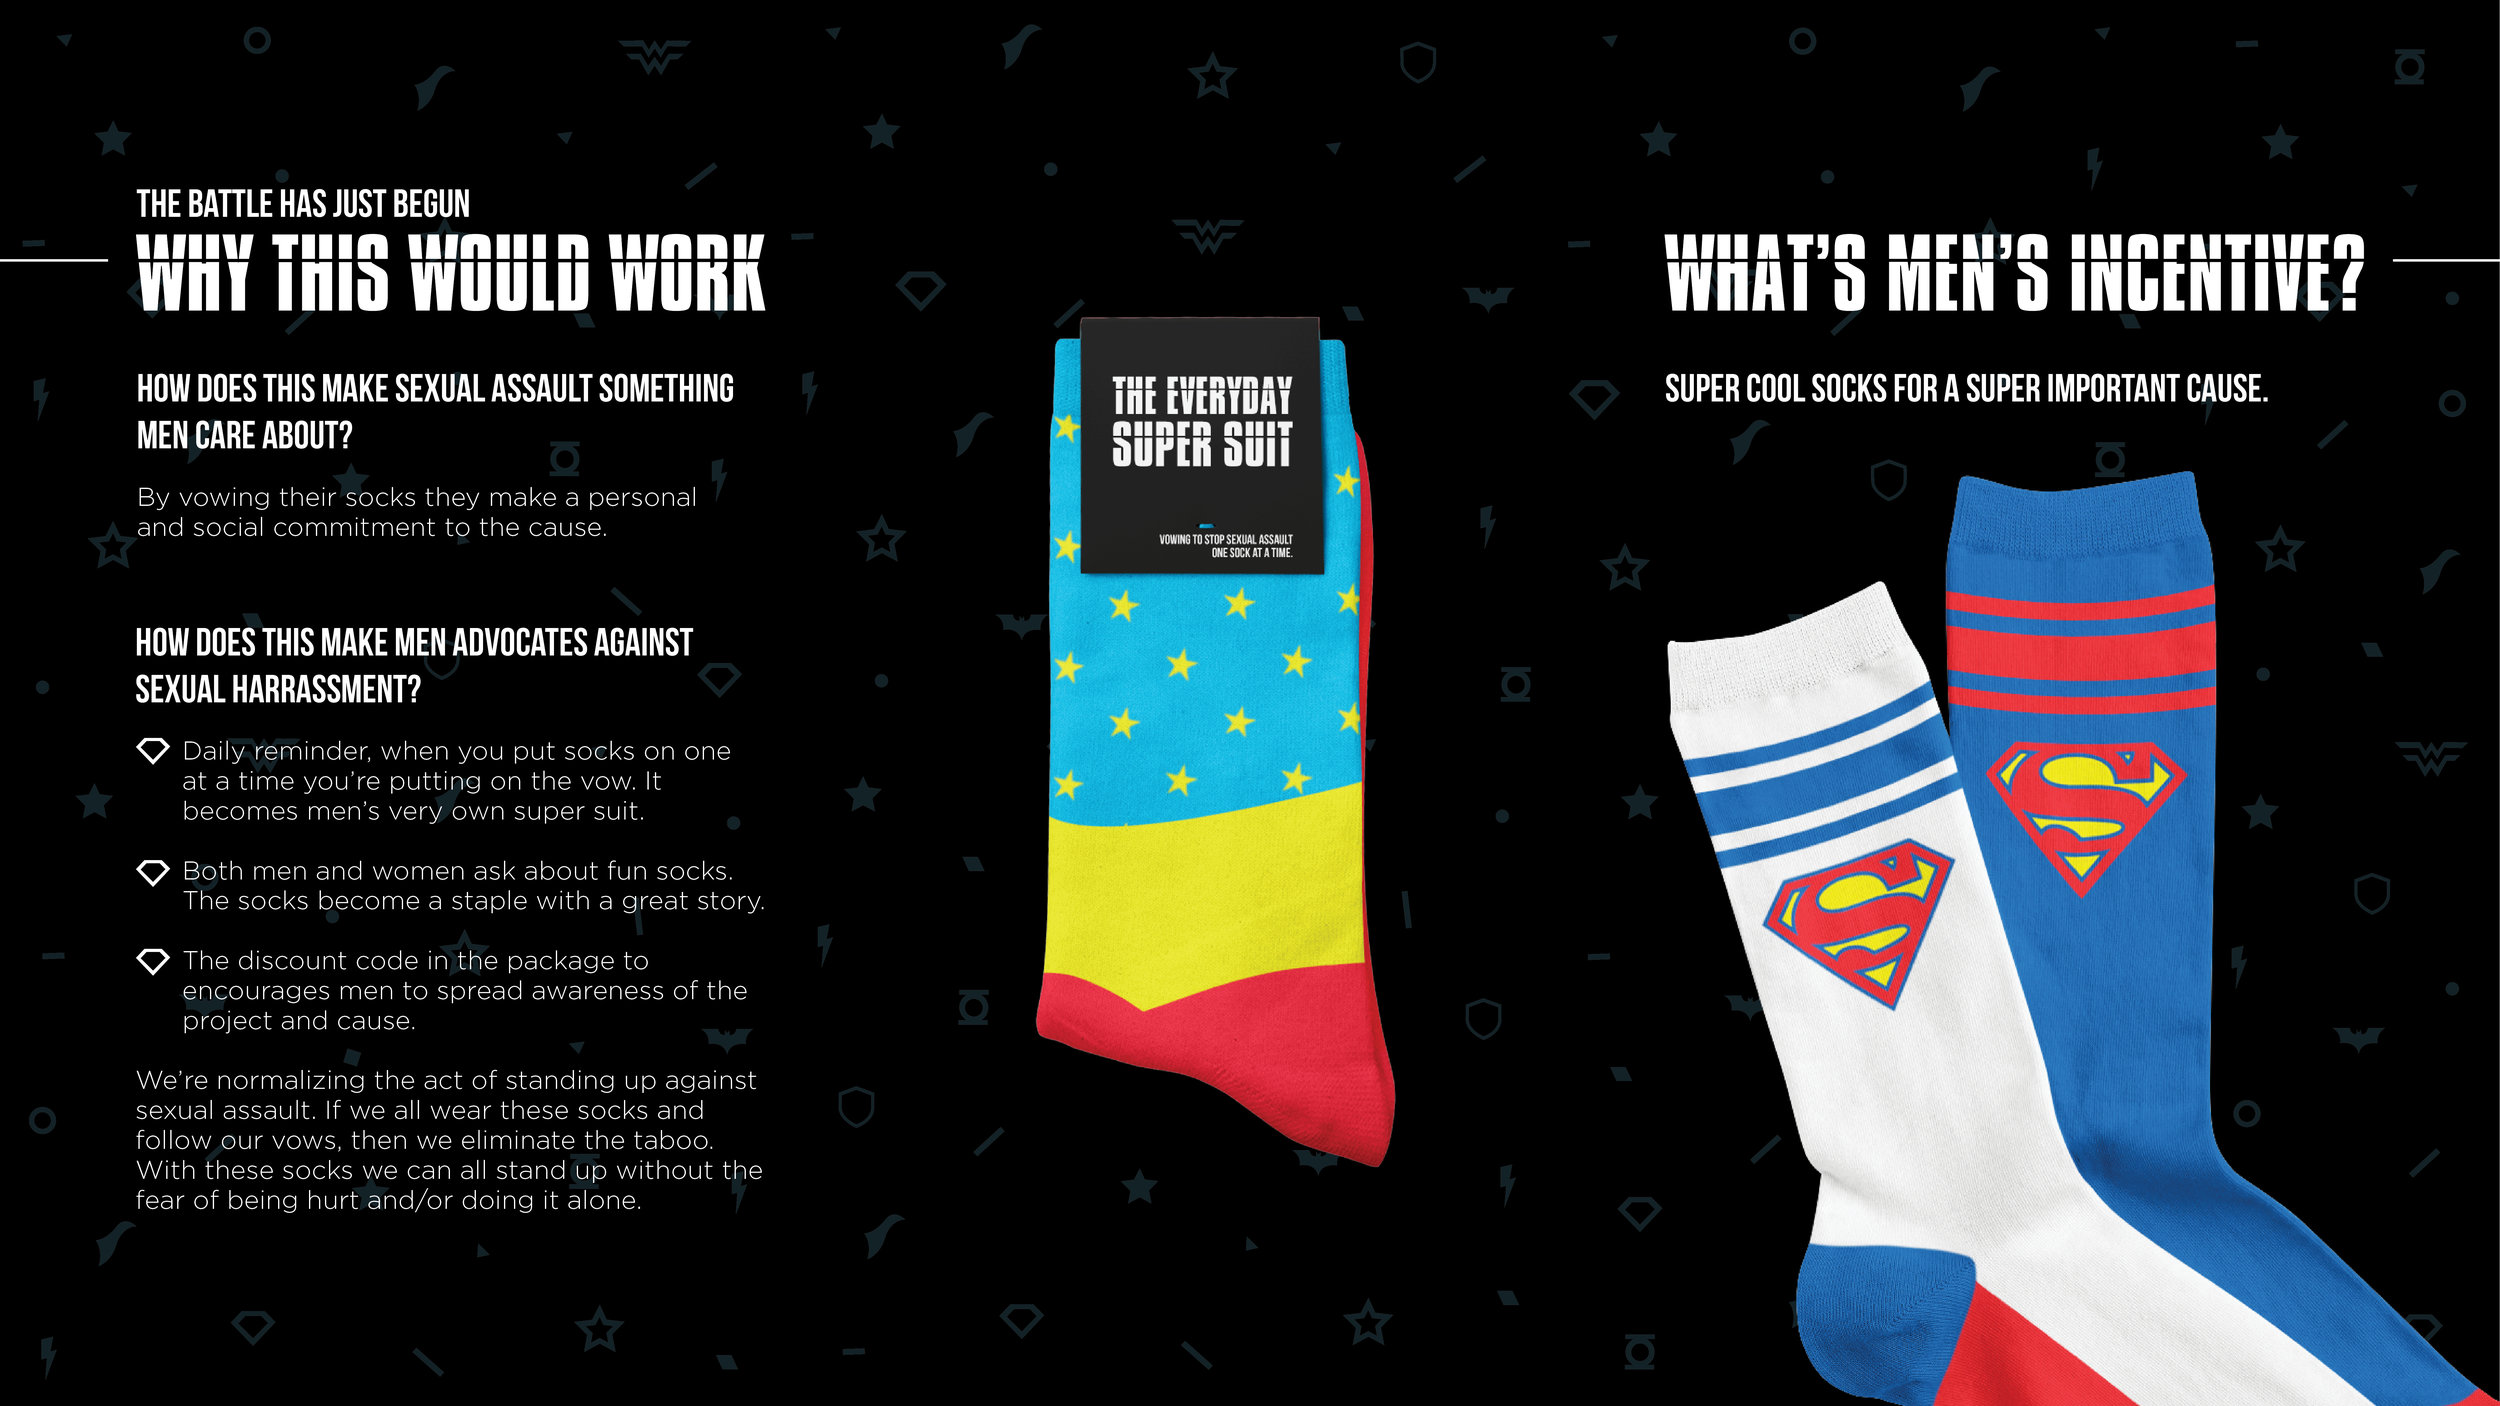 The Everyday Super Suit10.jpg